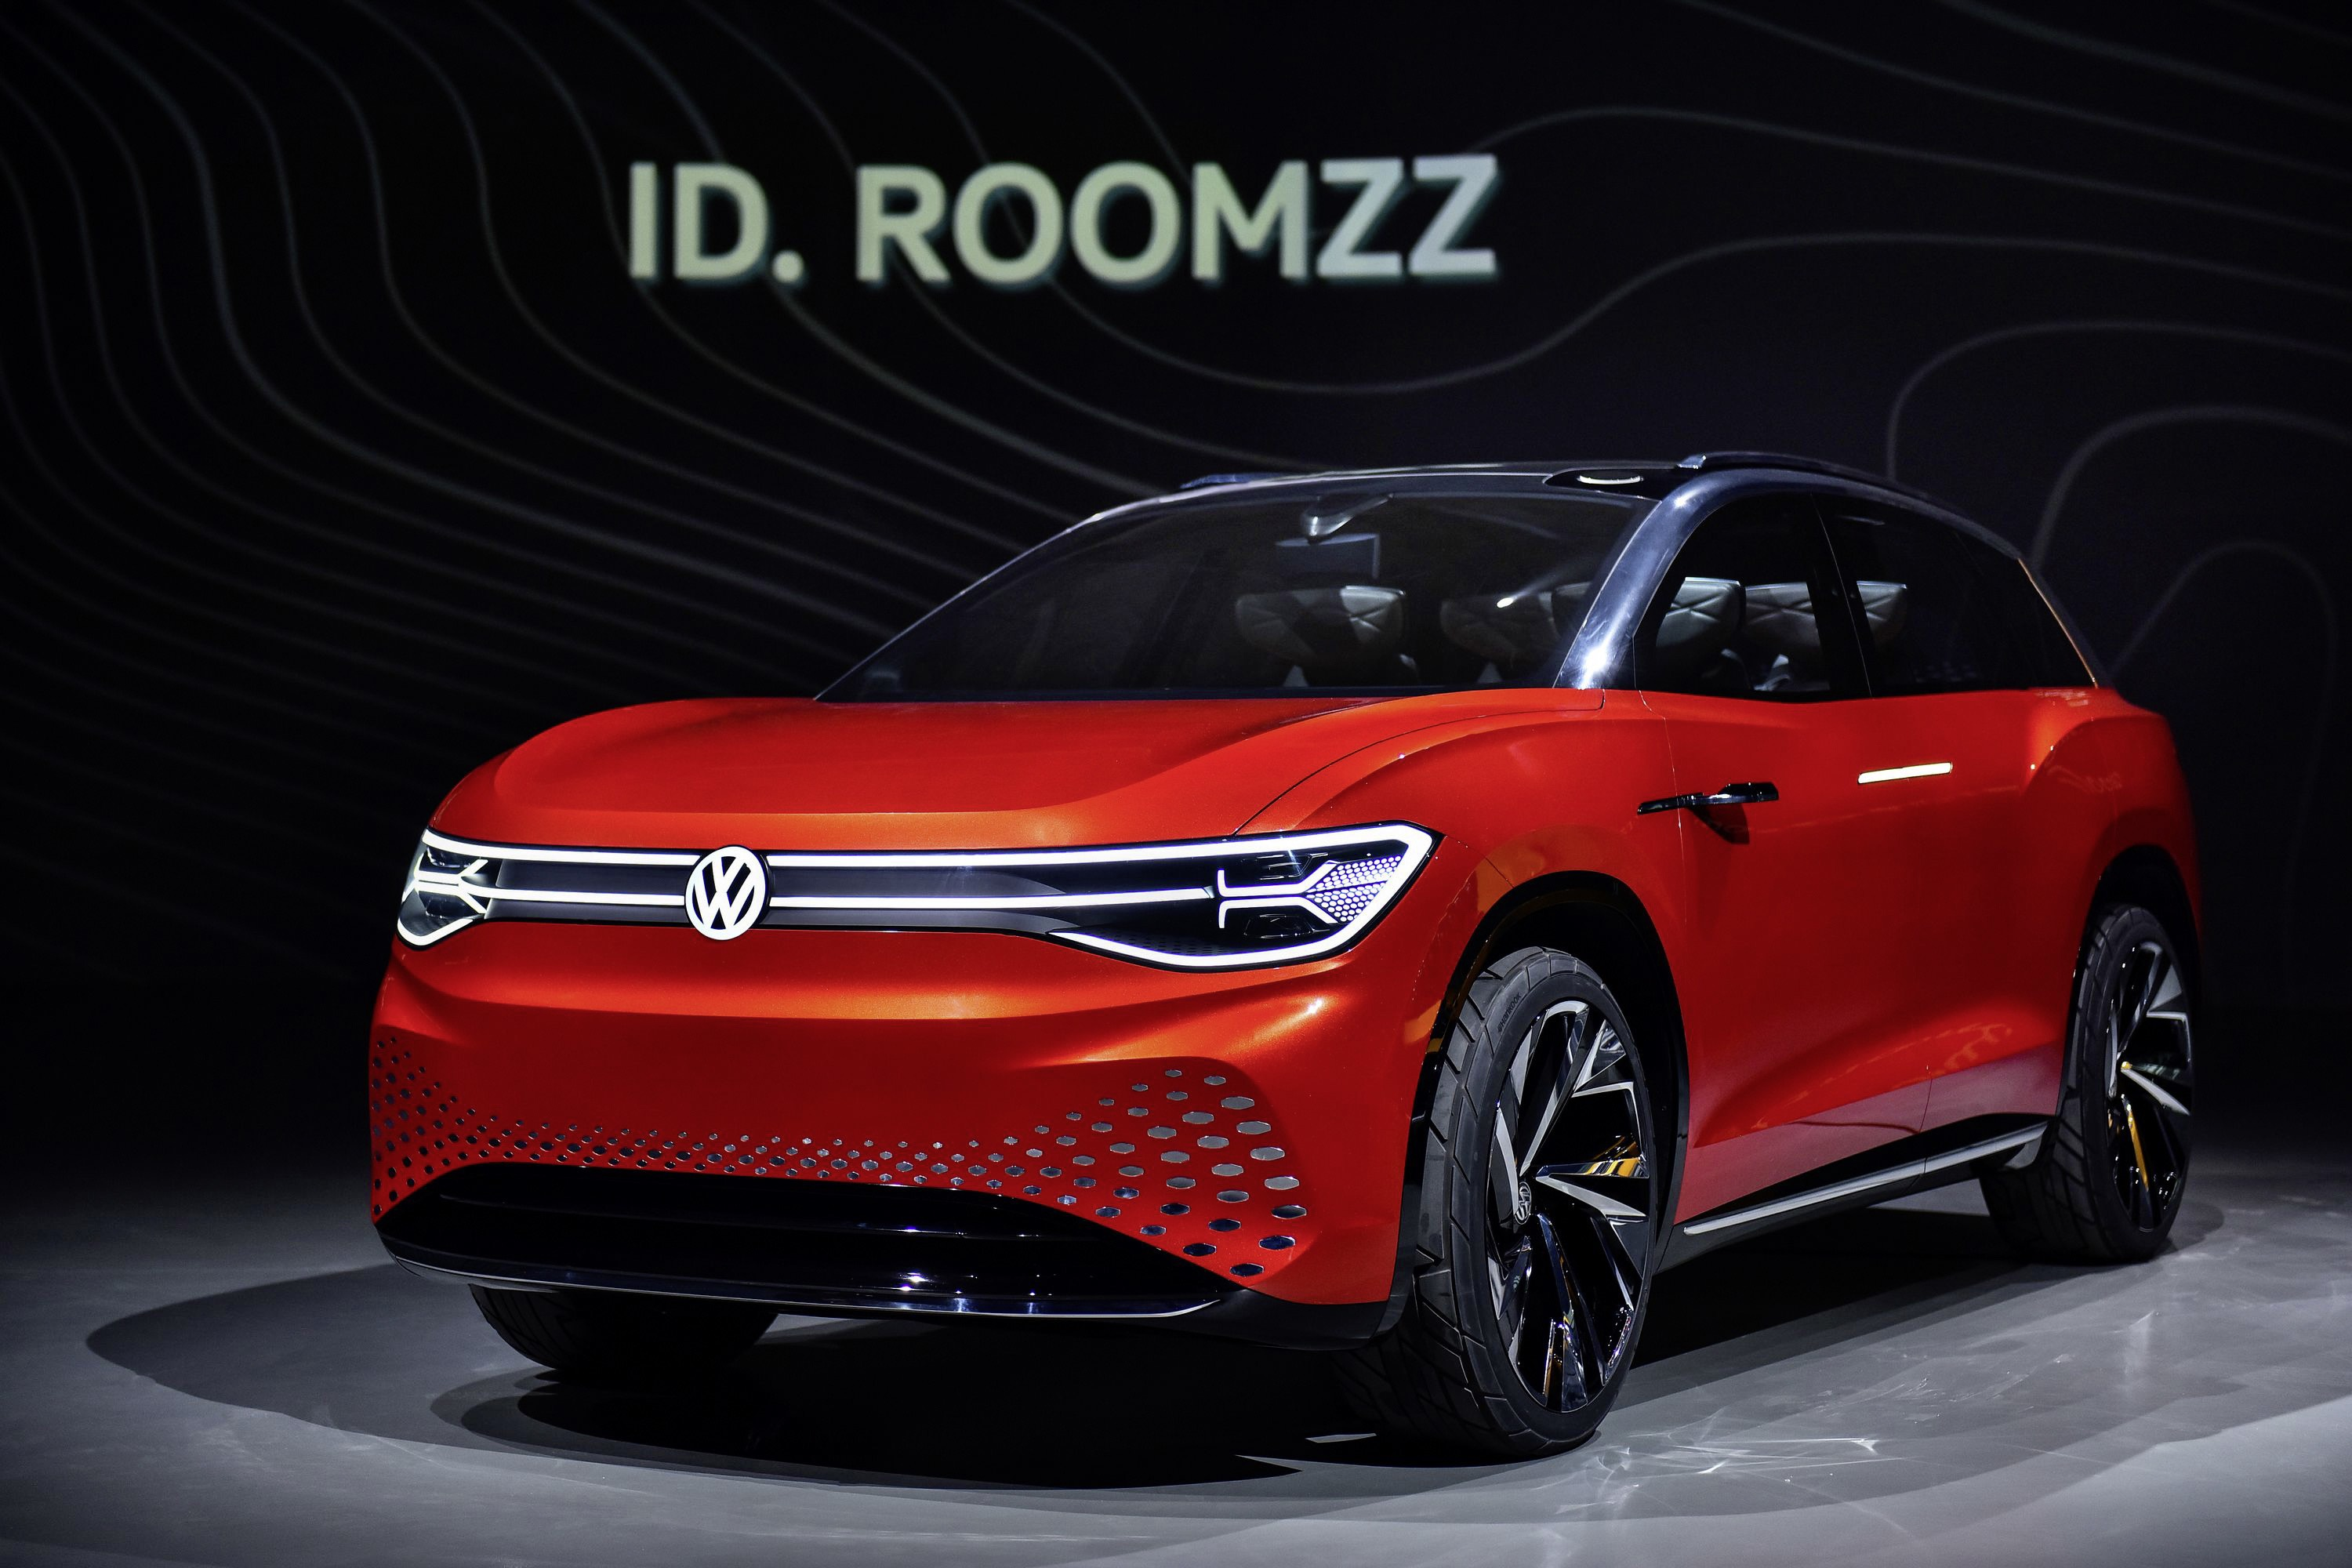 VW's ID Roomzz concept is almost a living room on wheels thumbnail